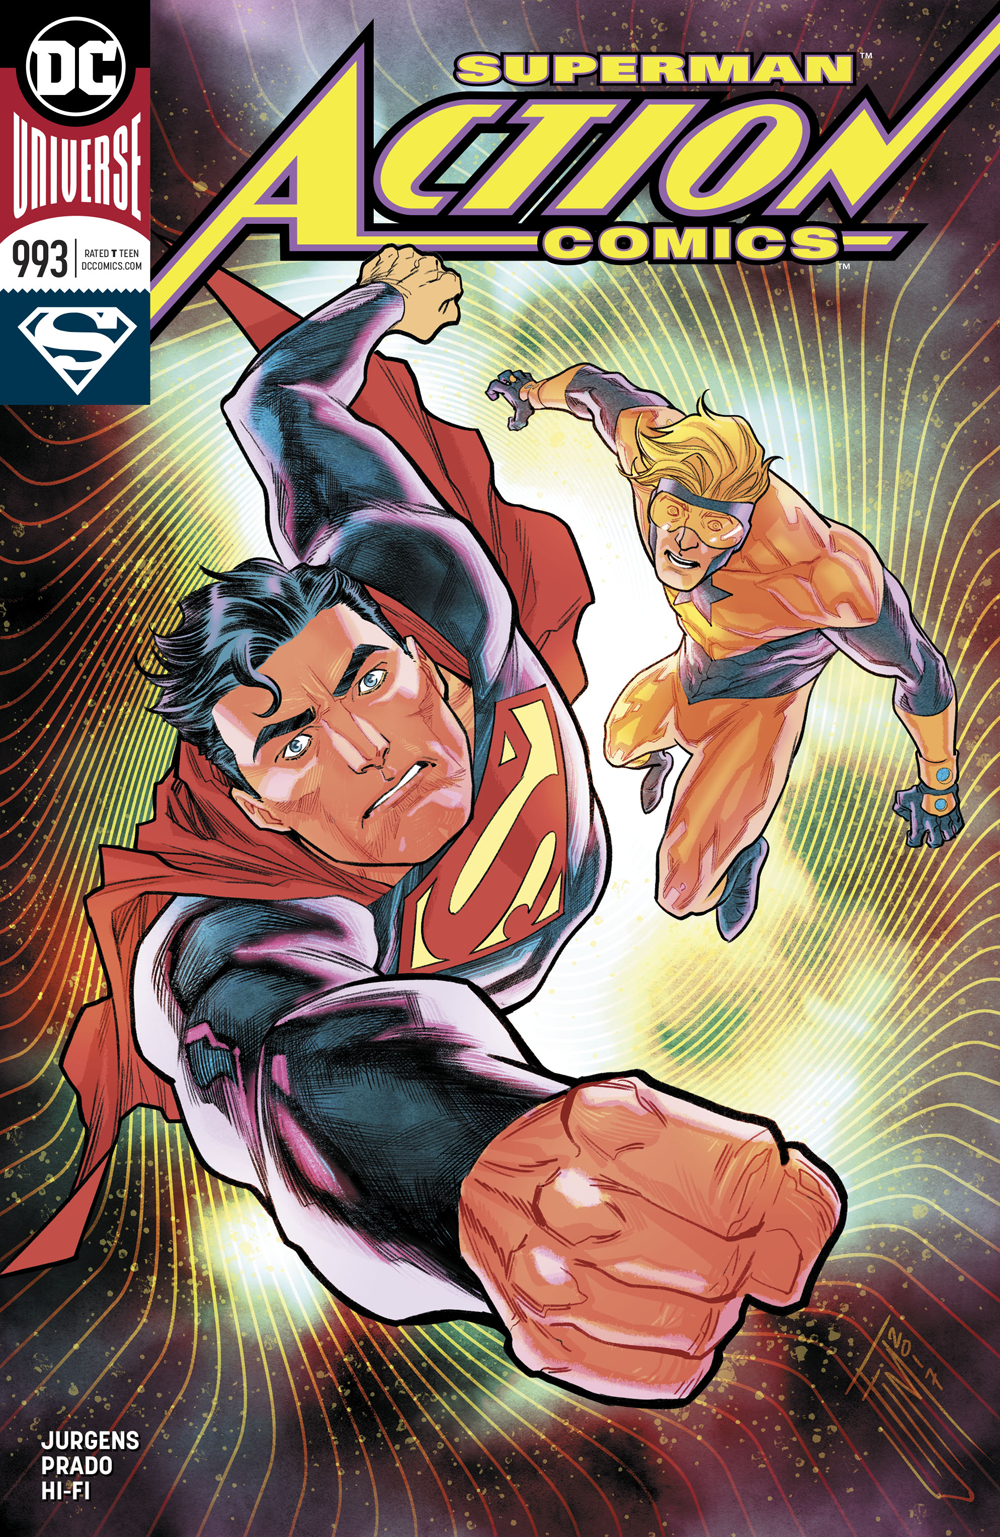 ACTION COMICS #993 VAR ED